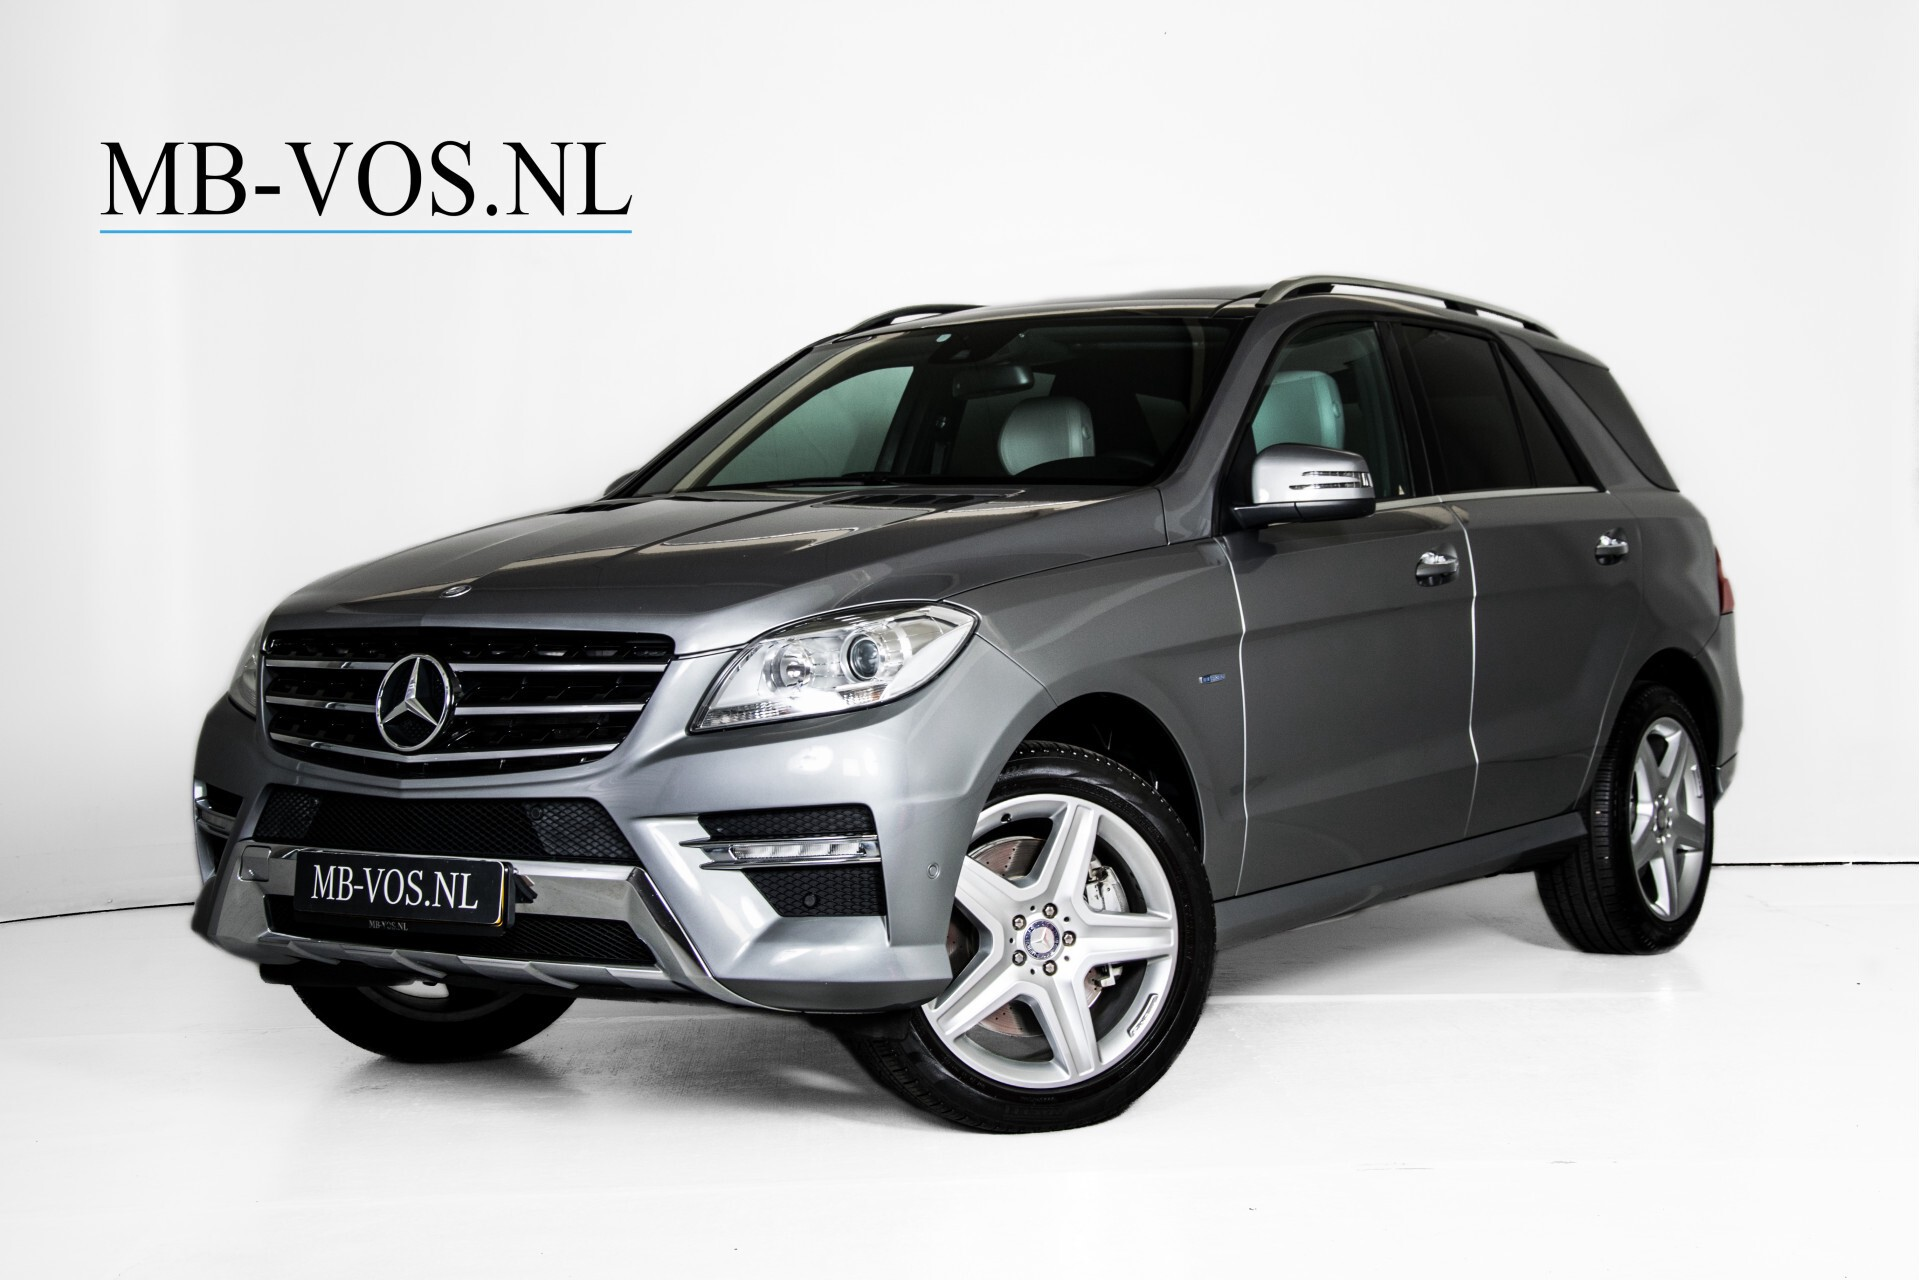 Mercedes-Benz M-Klasse 350 AMG 4-M Panorama/Keyless/Harman-Kardon/Camera/Trekhaak Aut7 Foto 1